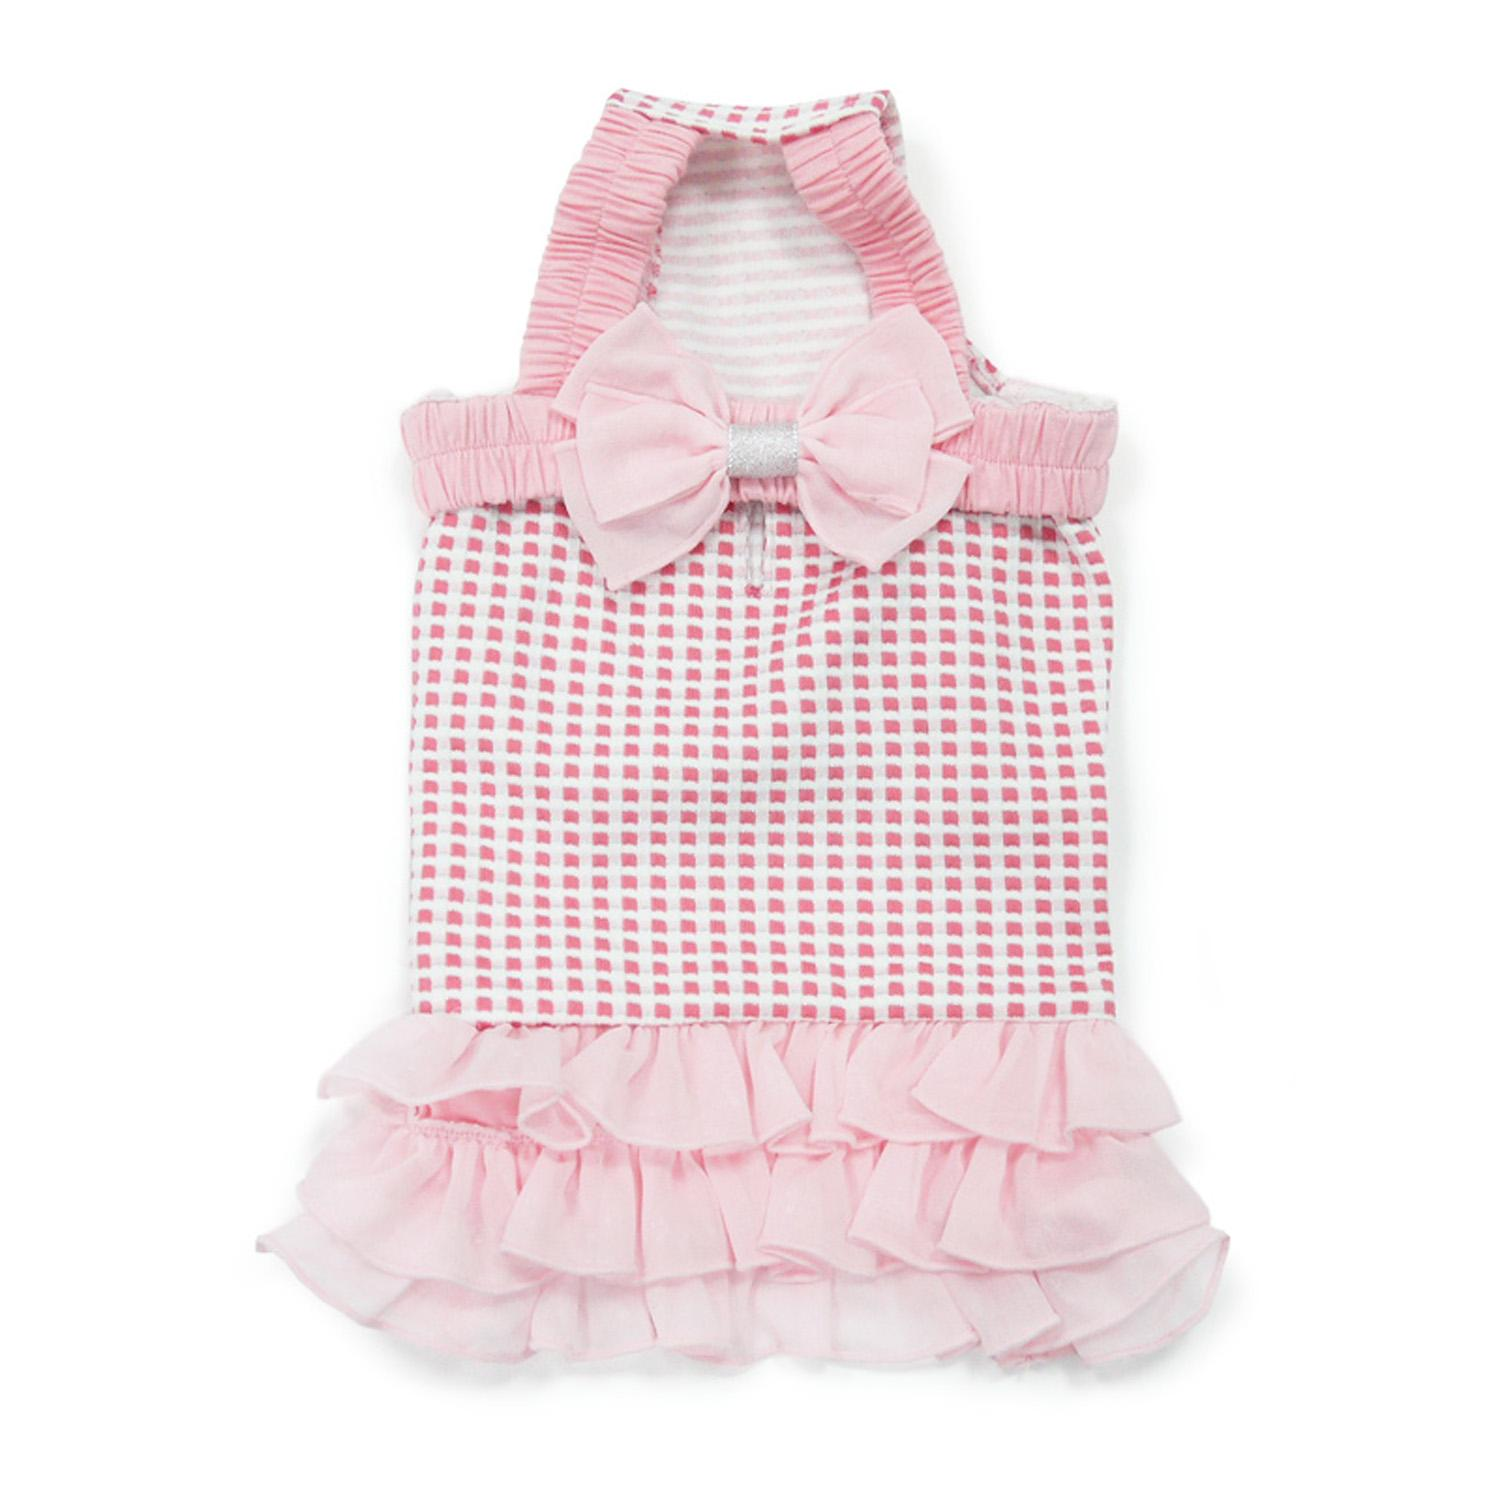 Halter Woven Dog Dress by Dogo - Pink